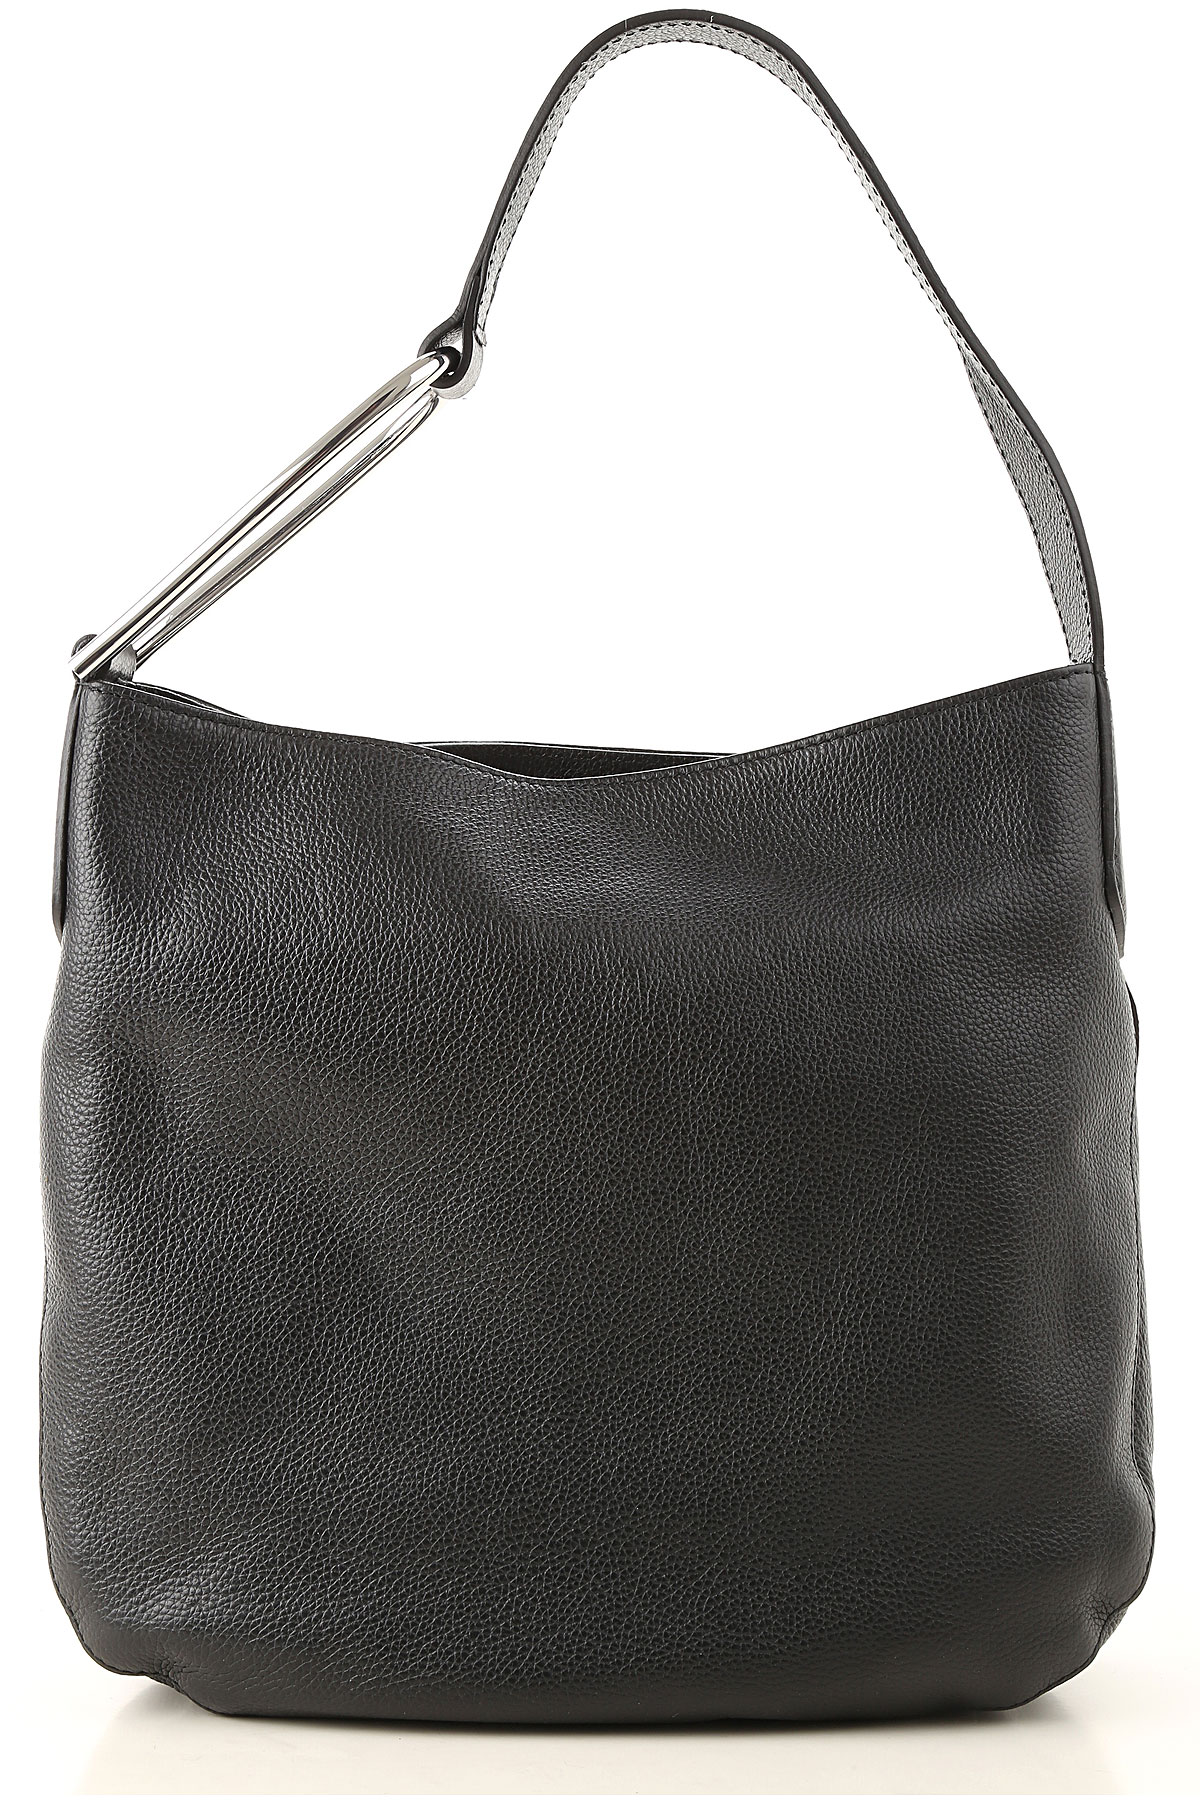 Image of Gianni Chiarini Shoulder Bag for Women, Black, Leather, 2017